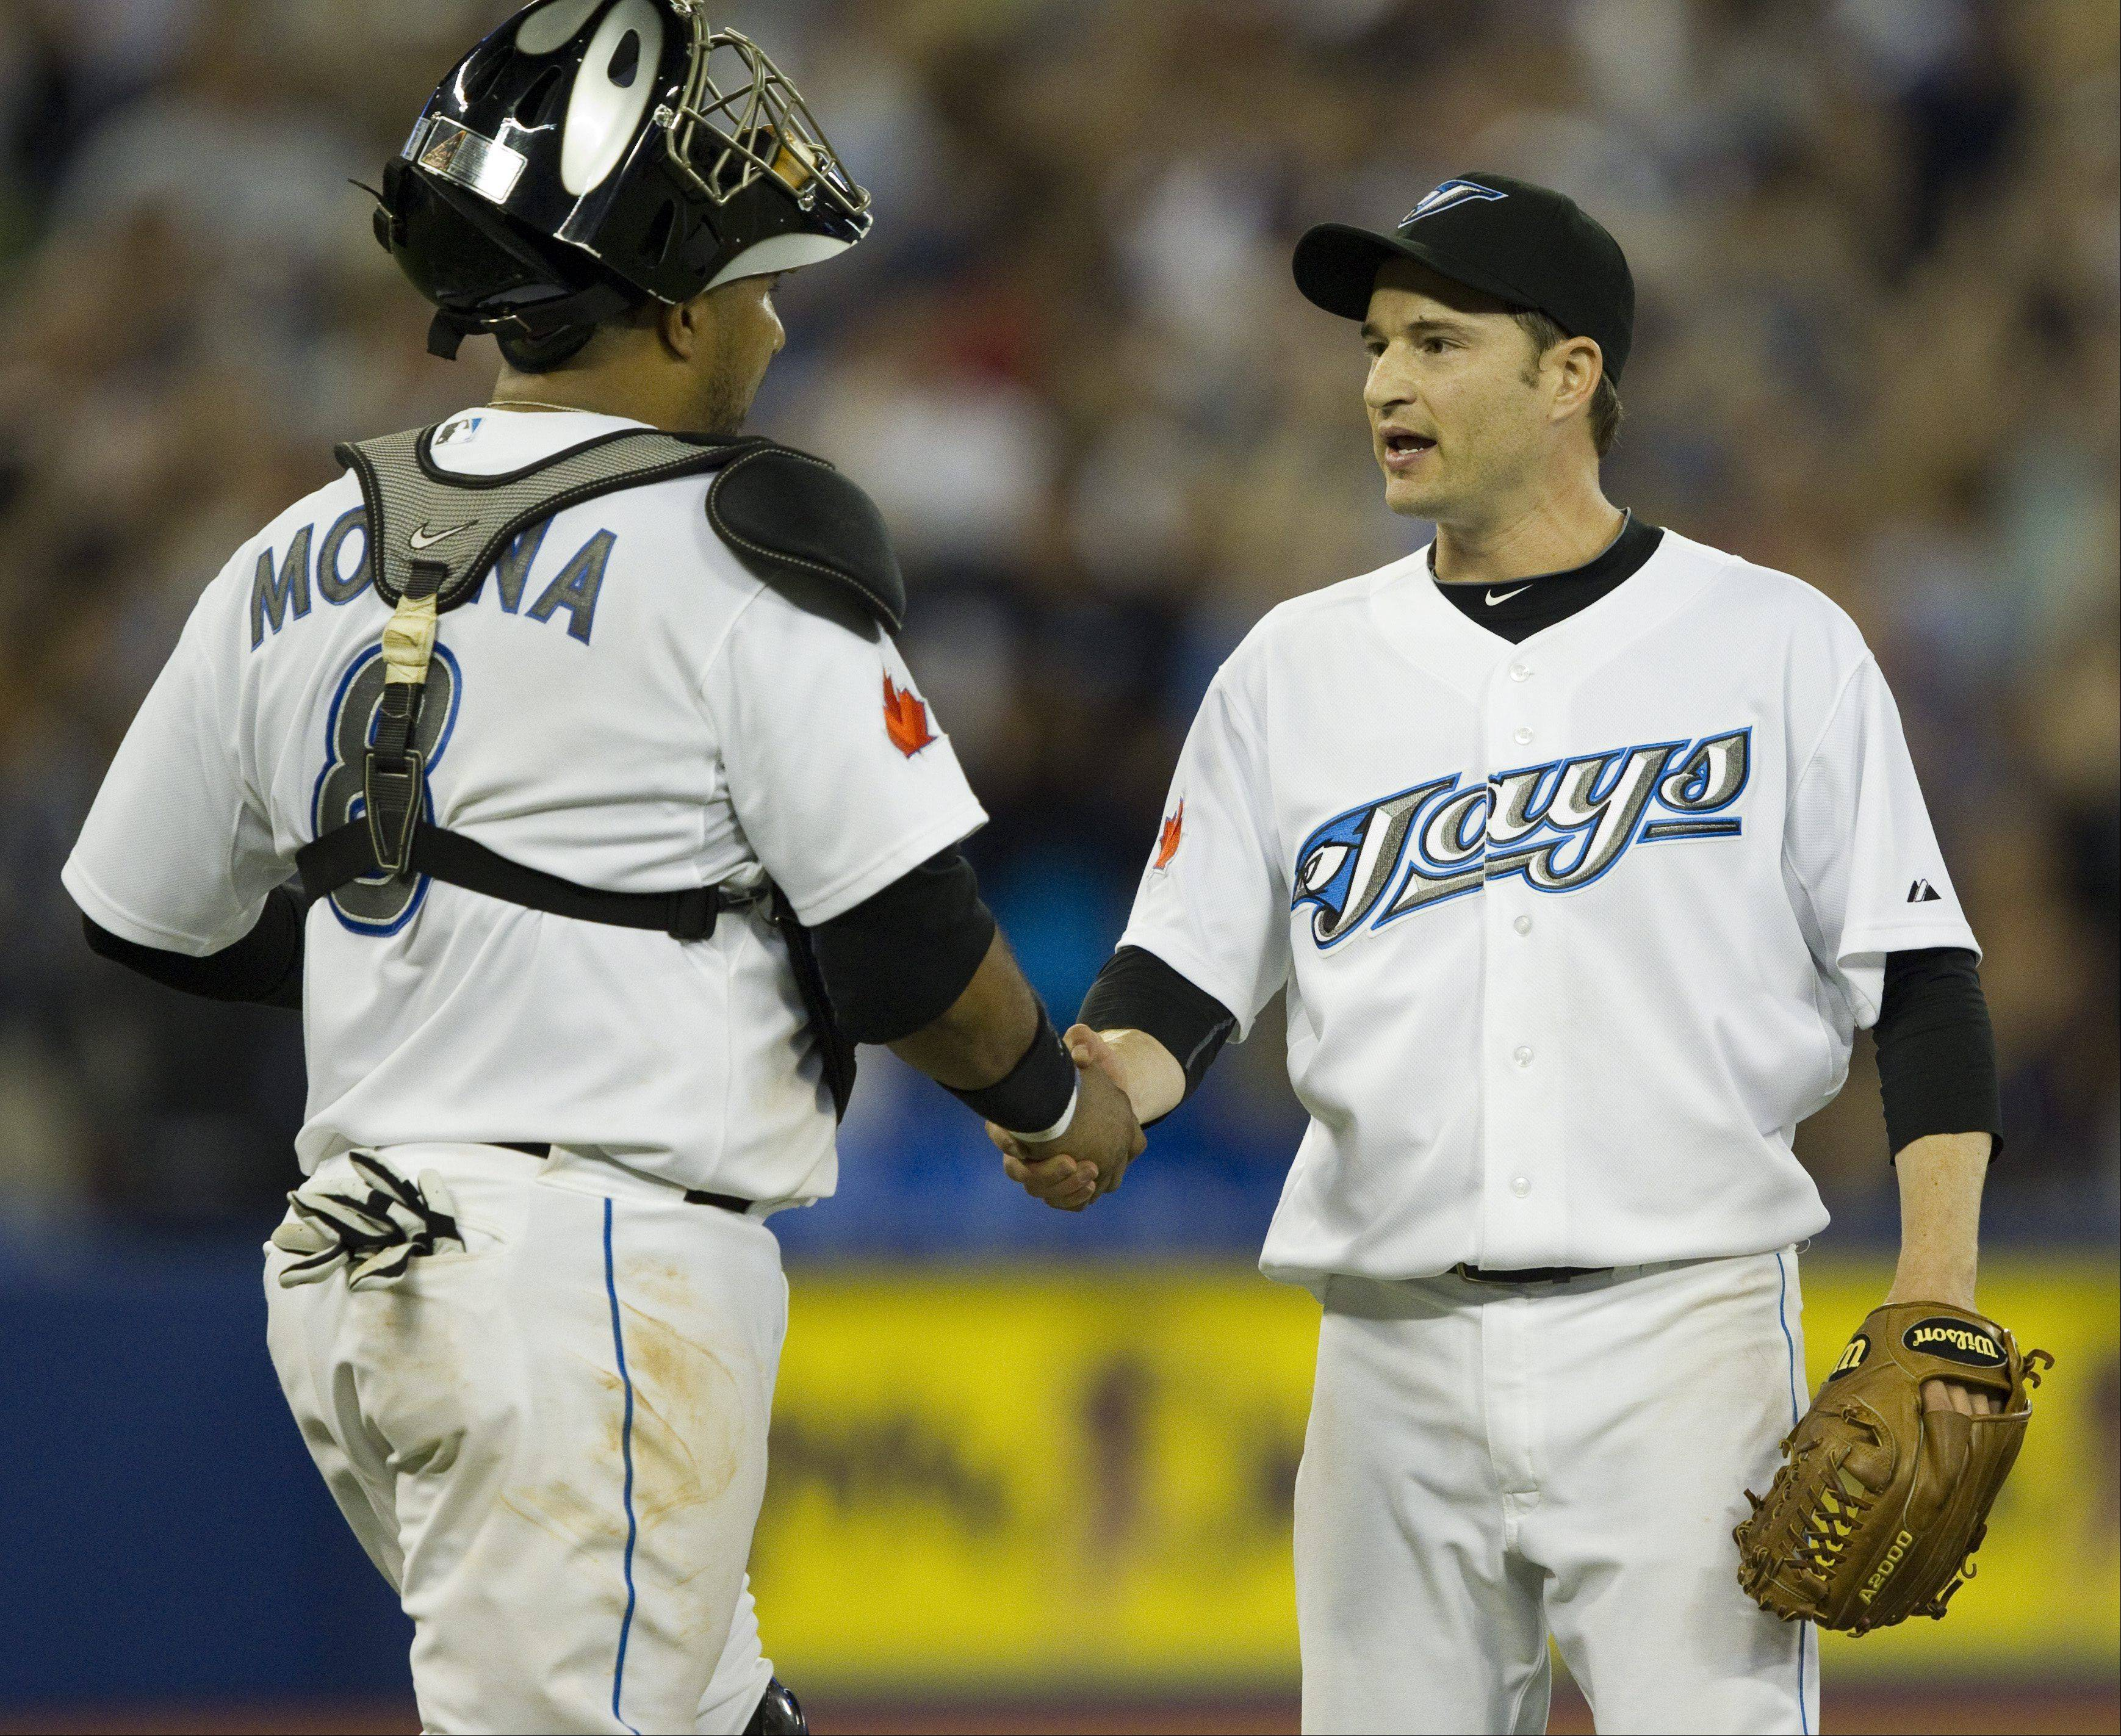 Toronto Blue Jays pitcher Jason Frasor has been a dependable reliever, and the White Sox acquired the Chicago native in a four-player deal on Wednesday.